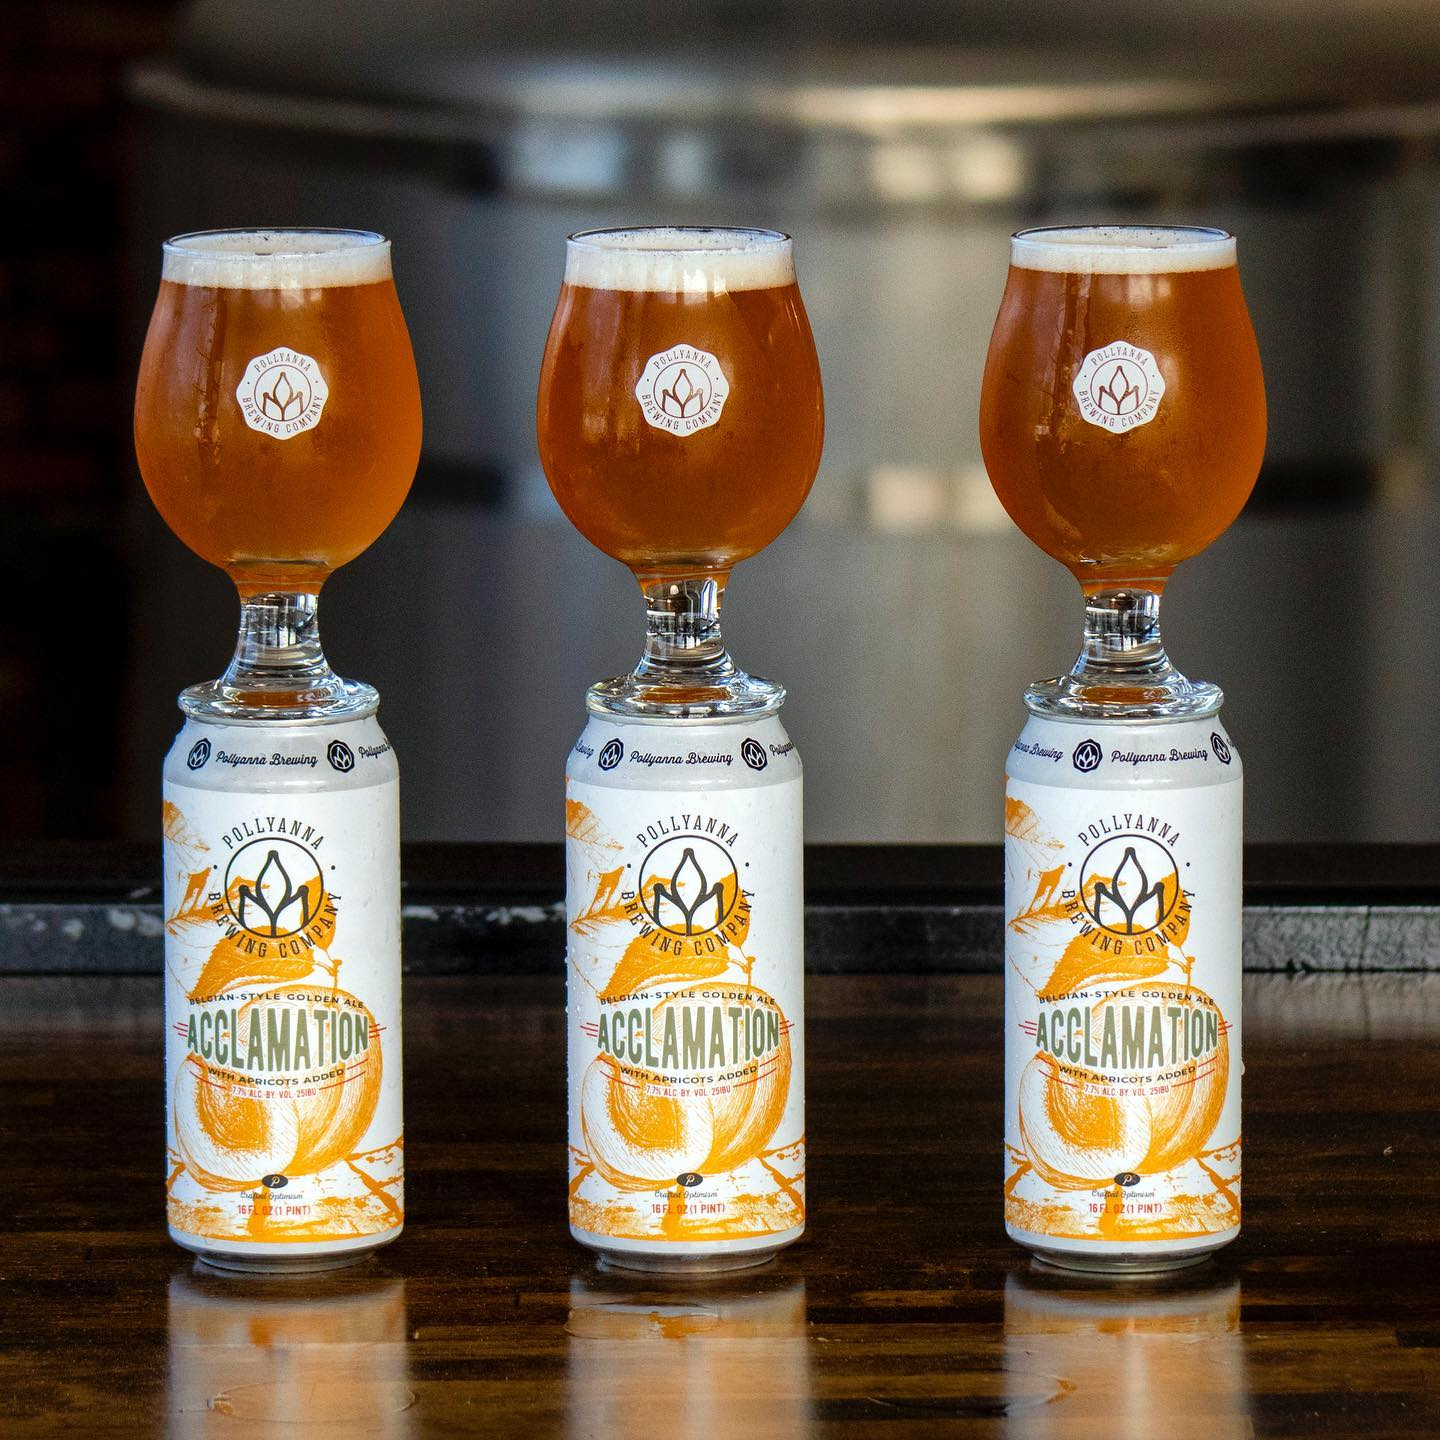 Three glasses of beer, each on top of their own can (Pollyanna Brewing)